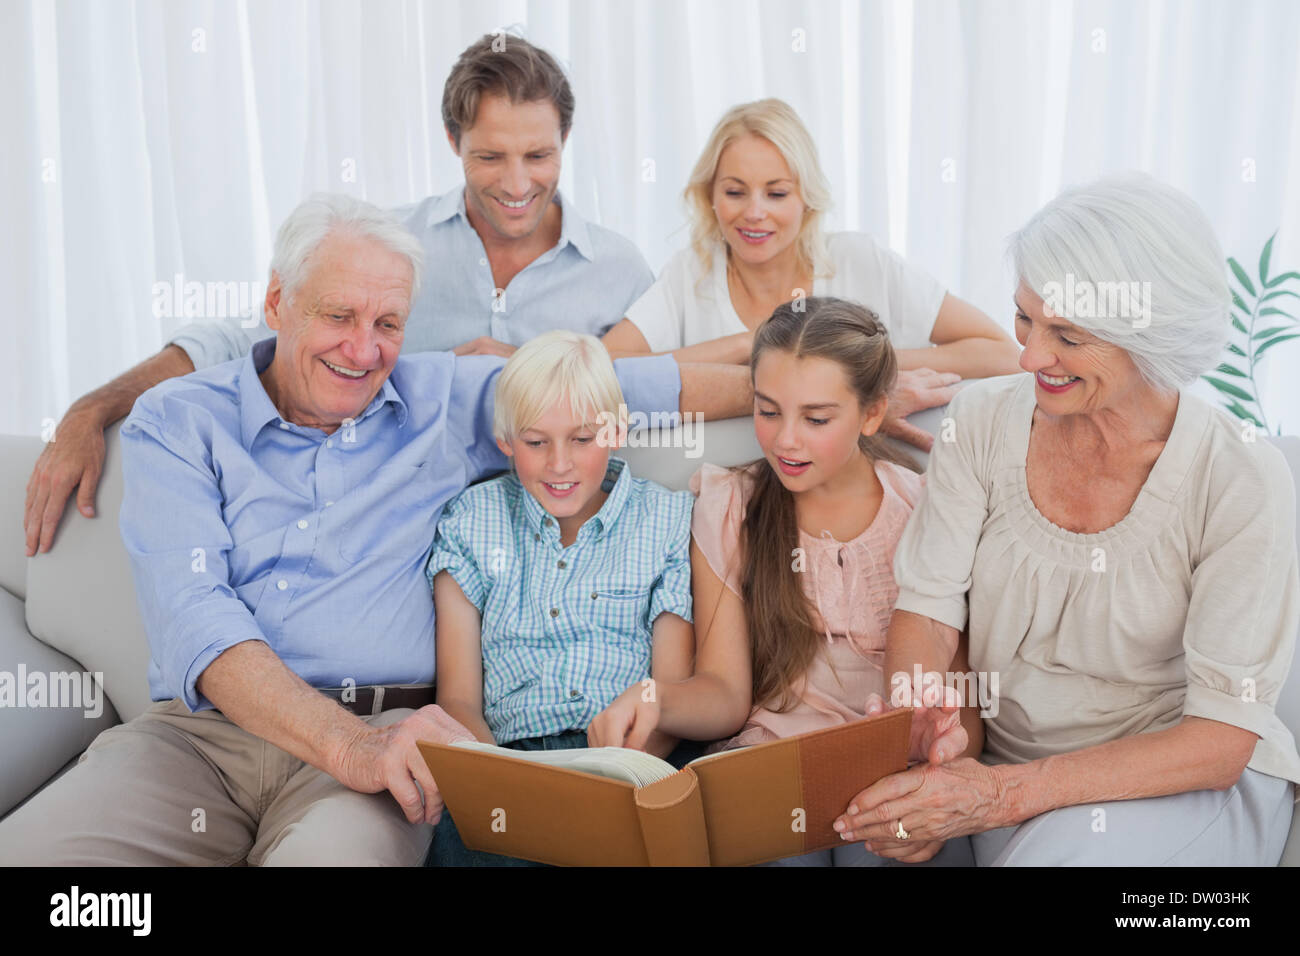 Extended family looking at an album photo - Stock Image